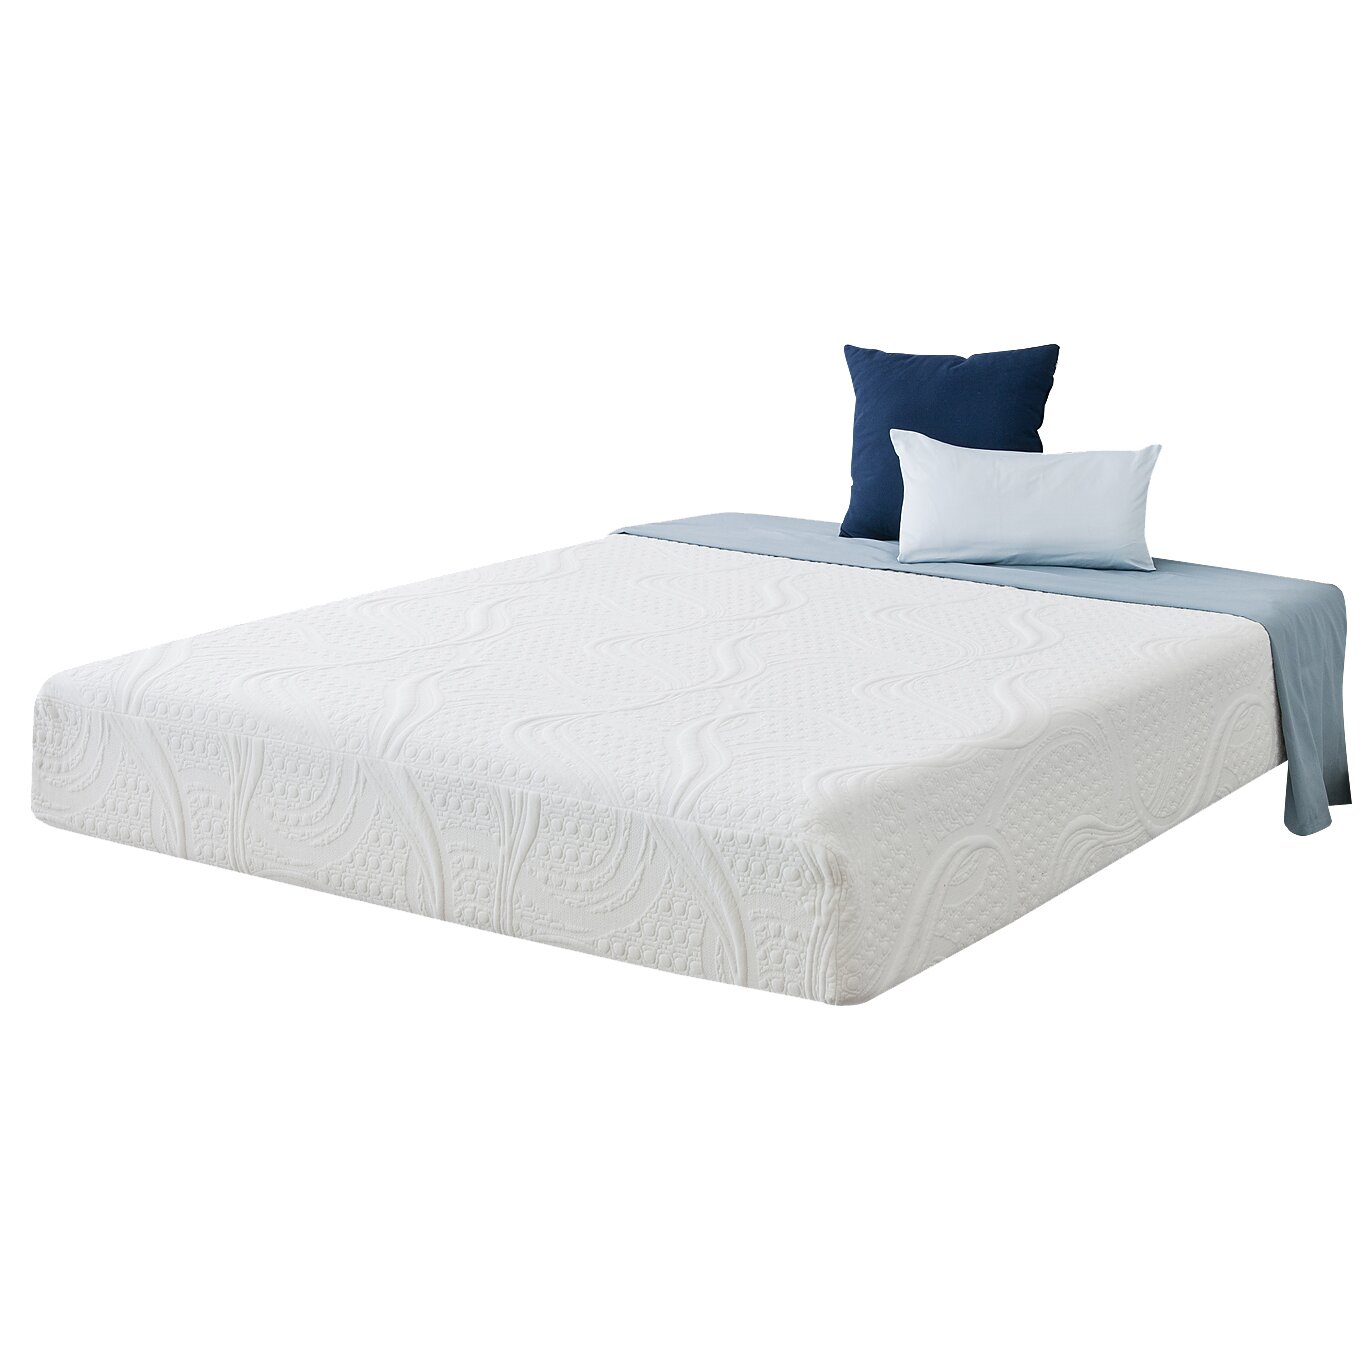 Anew edit 8 firm memory foam mattress reviews Mattress sale memory foam